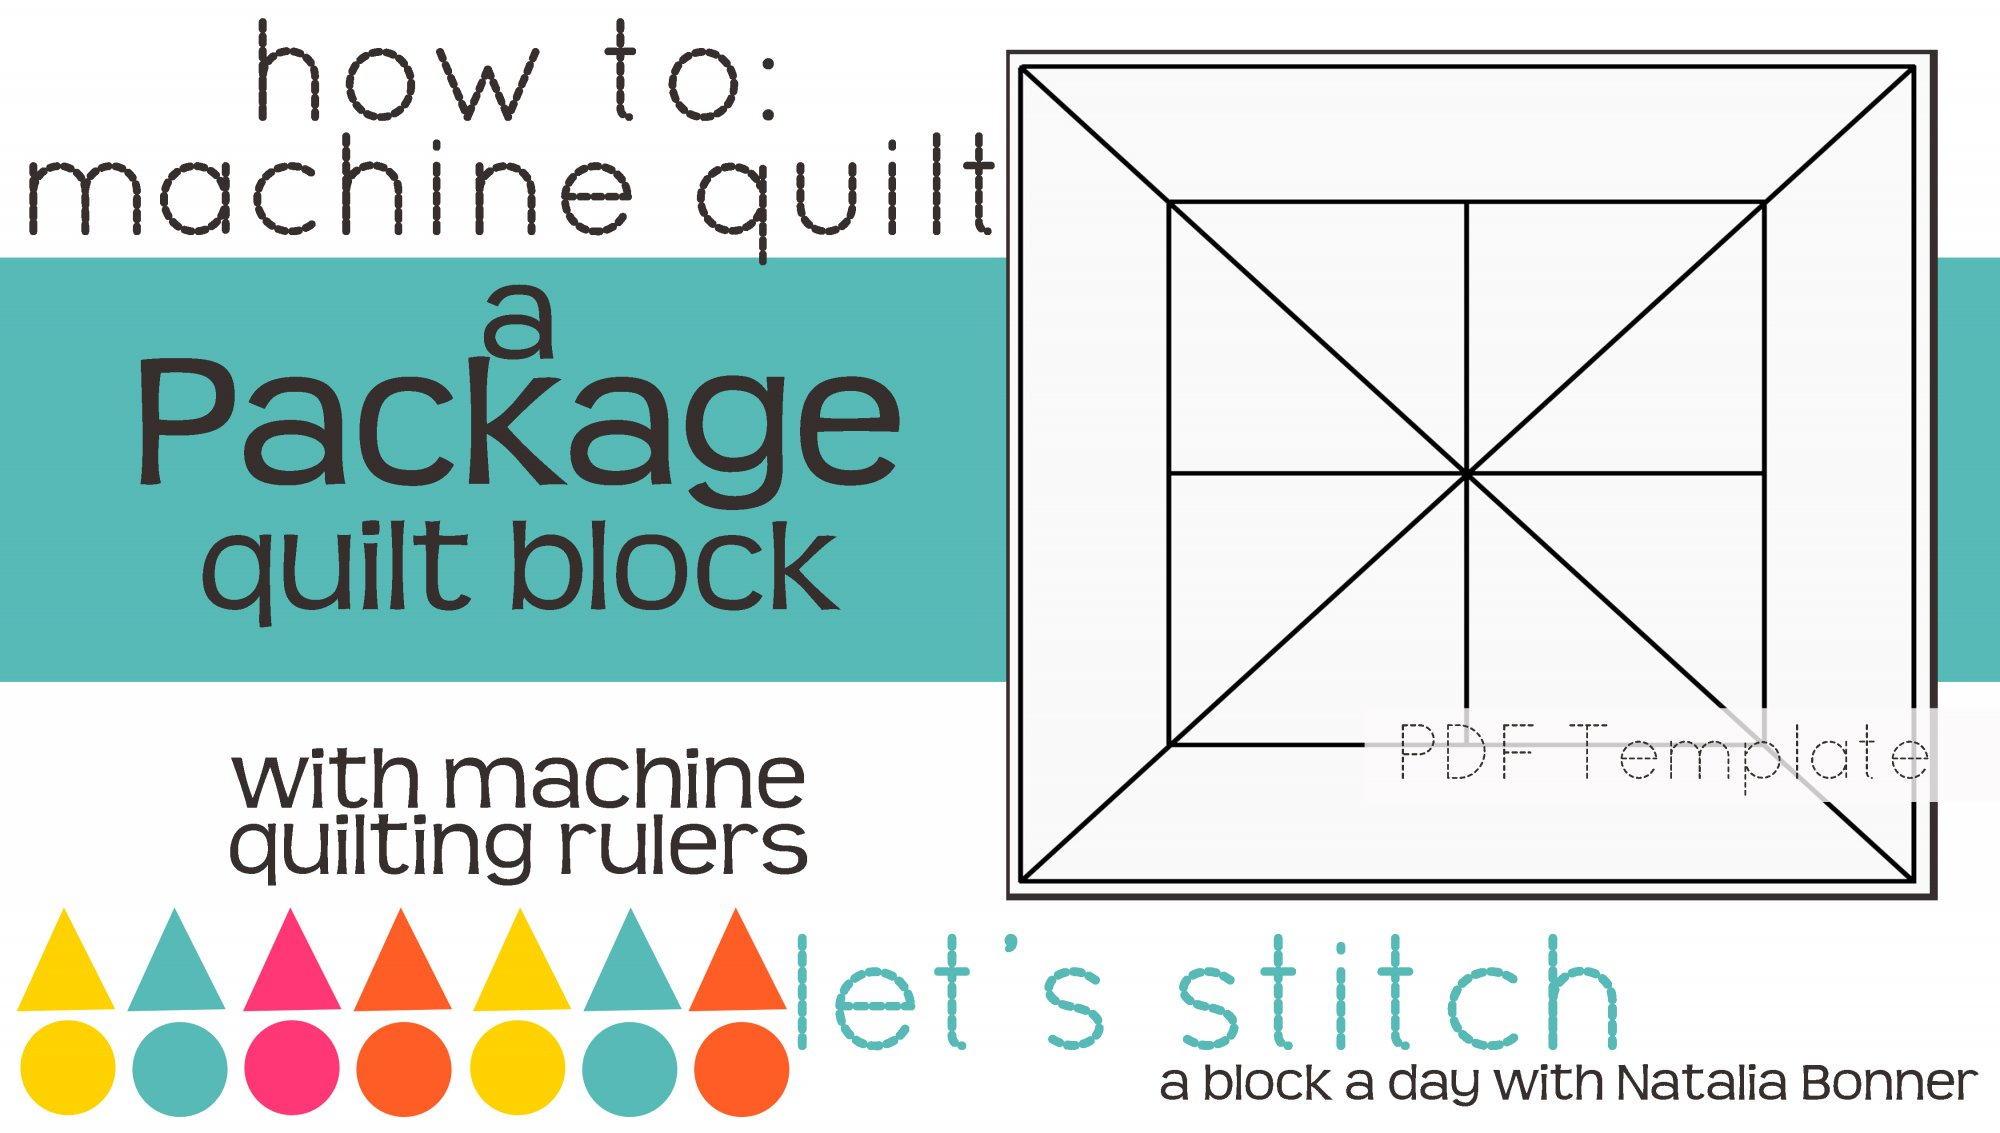 Let's Stitch - A Block a Day With Natalia Bonner - PDF - Package